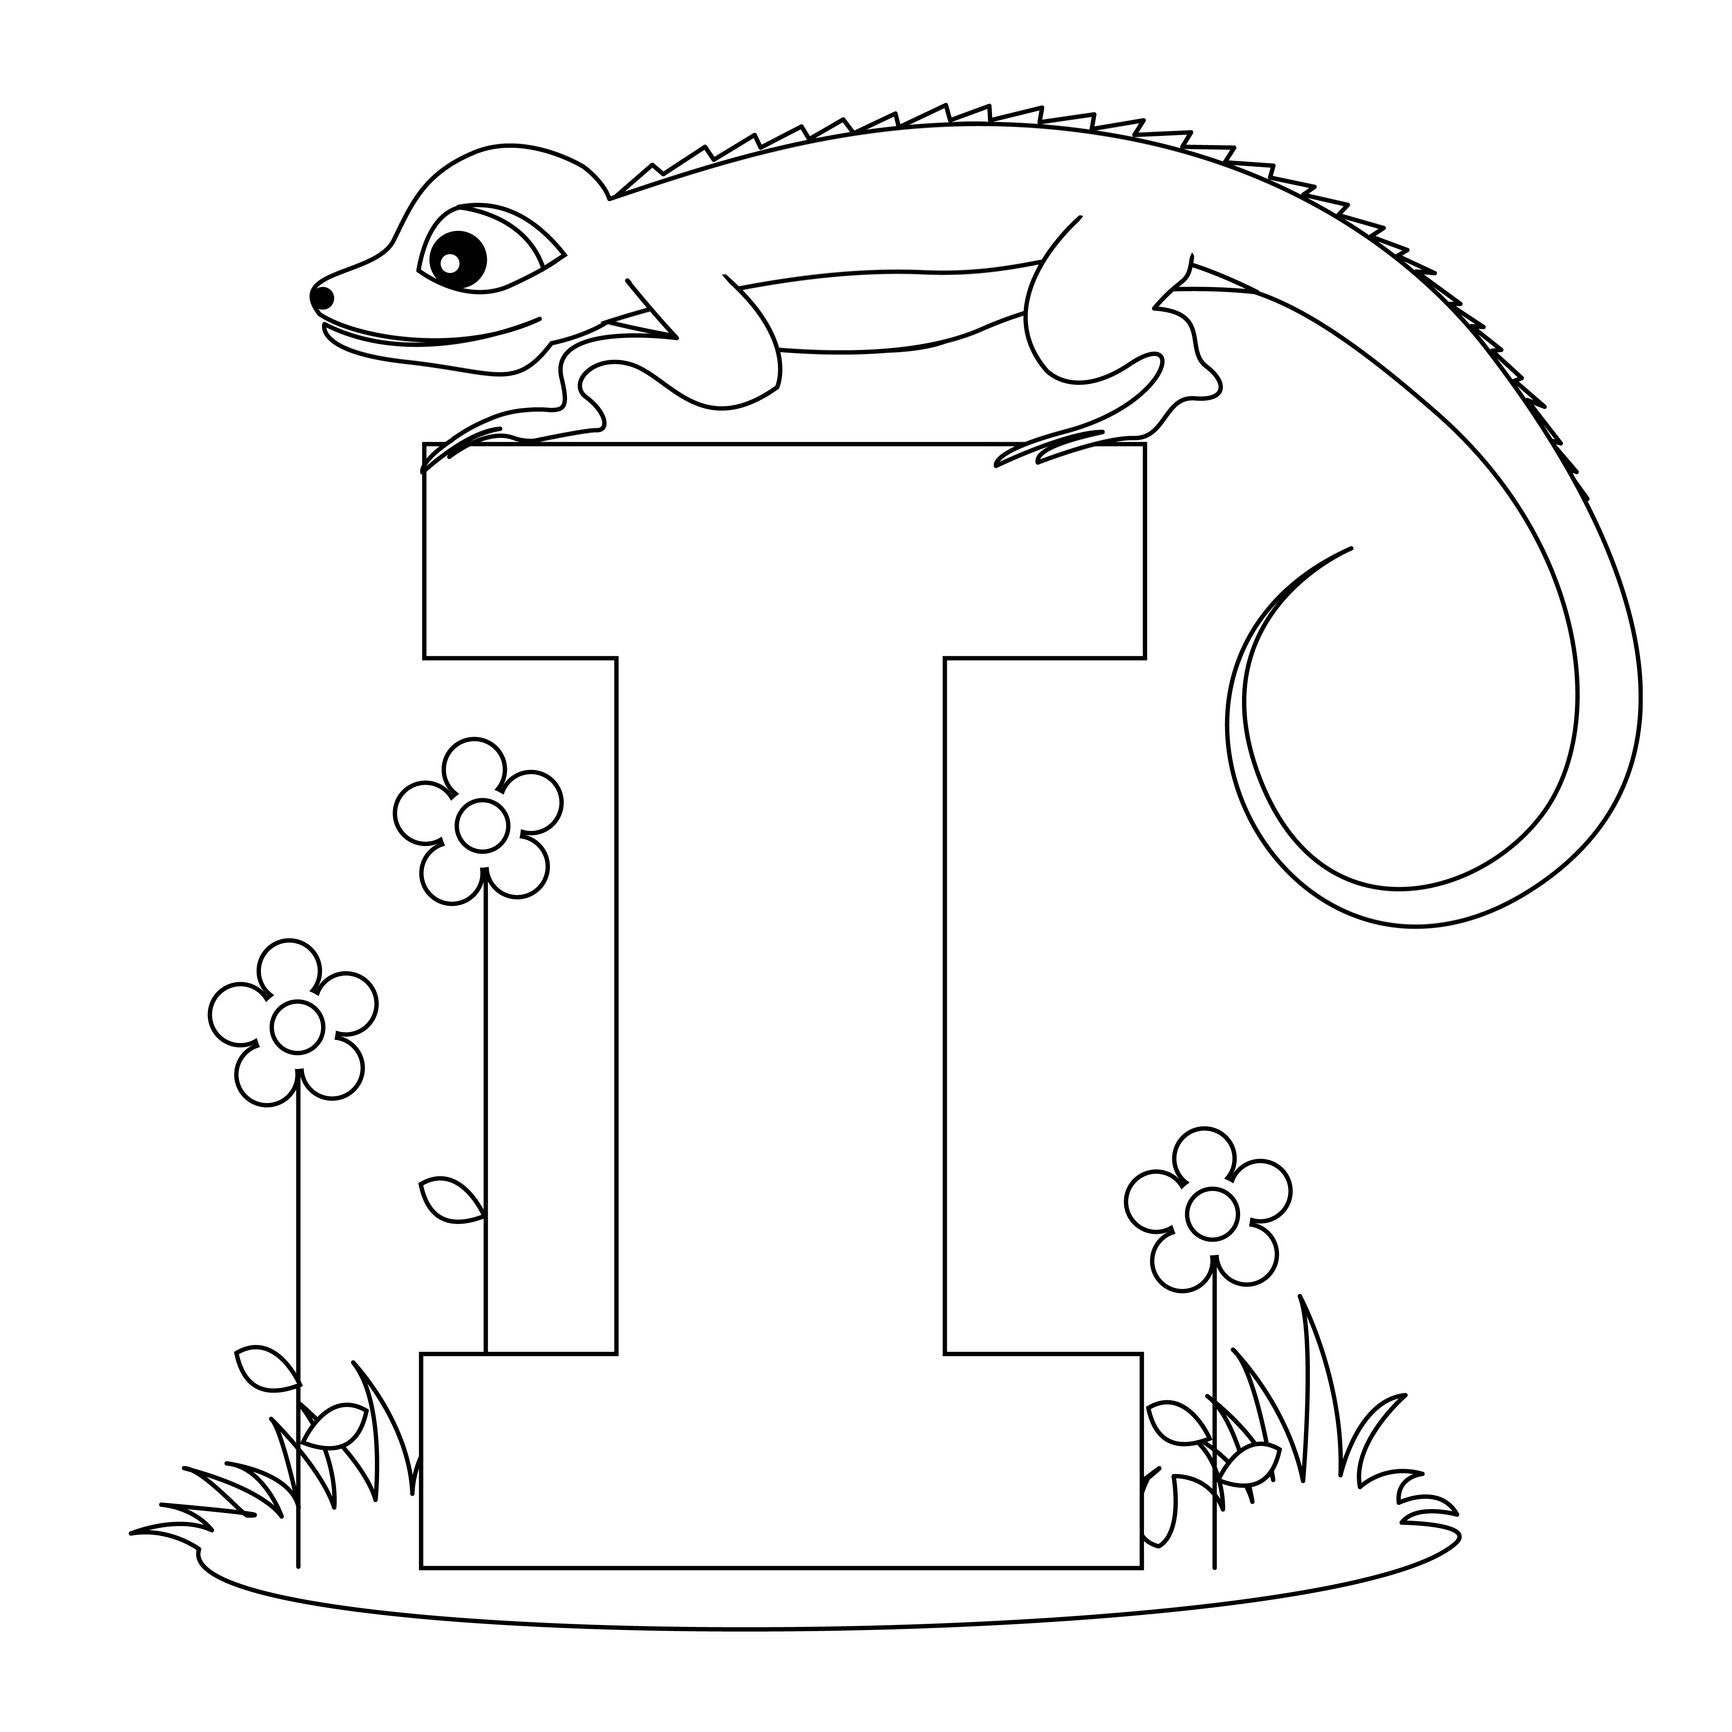 Image Detail For Animal Alphabet Letter I Coloring Worksheet From Kiboomu Worksheets